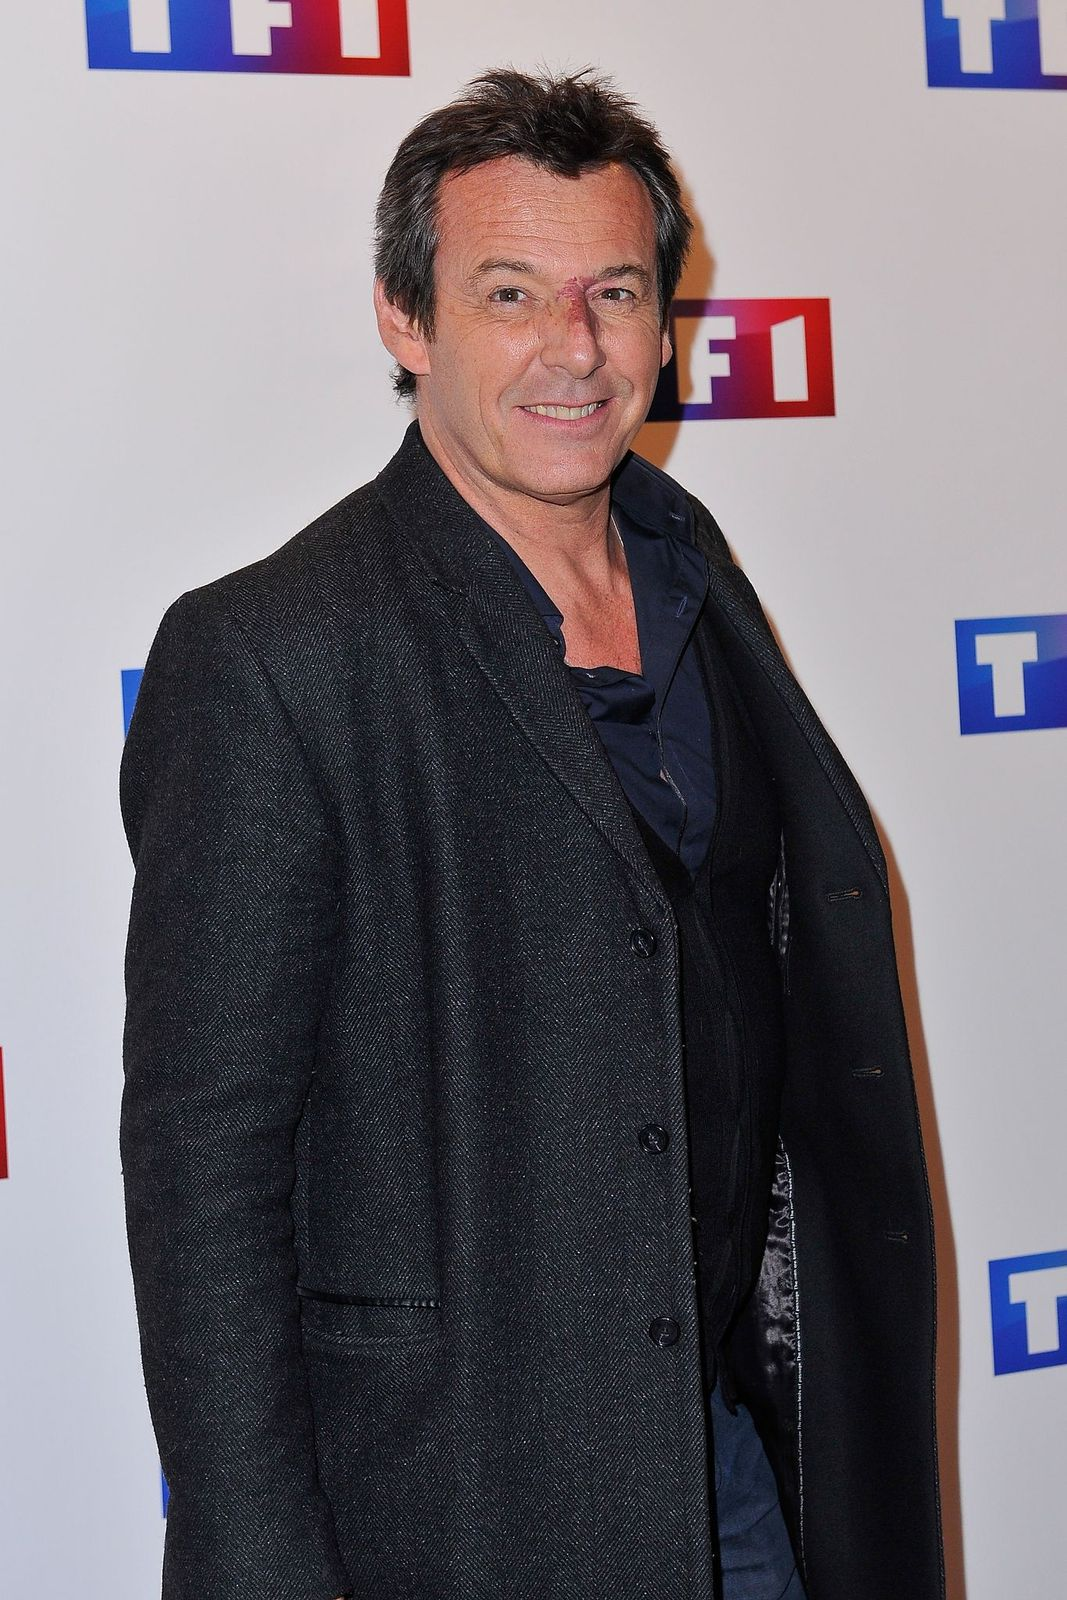 L'animateur Jean-Luc Reichmann | Photo : Getty Images